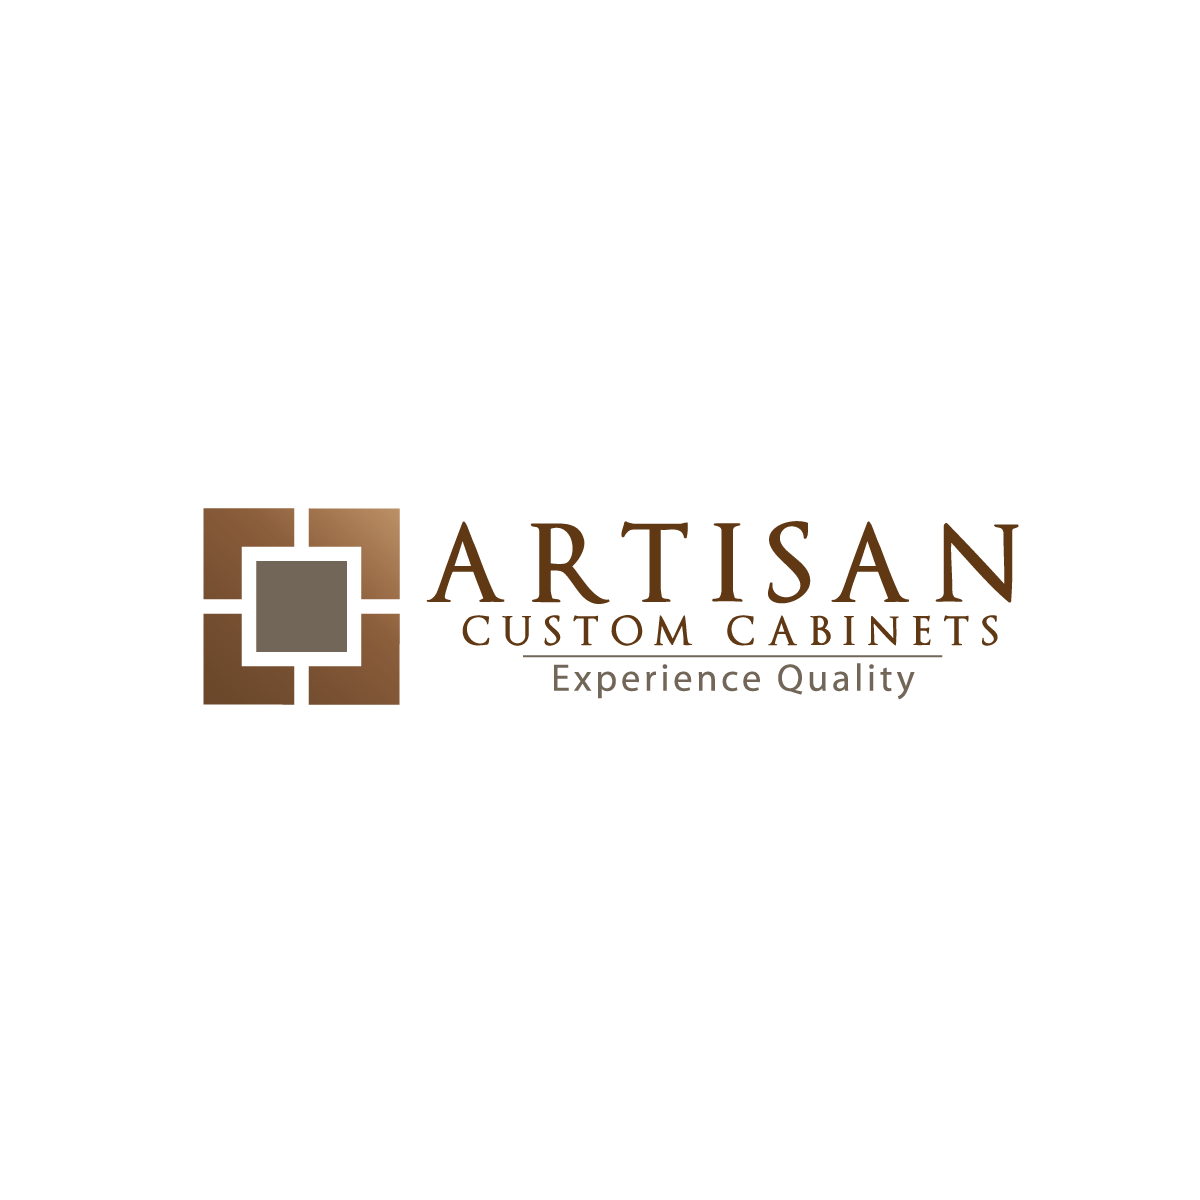 Logo Design by rockin - Entry No. 82 in the Logo Design Contest Creative Logo Design for Artisan Custom Cabinets.